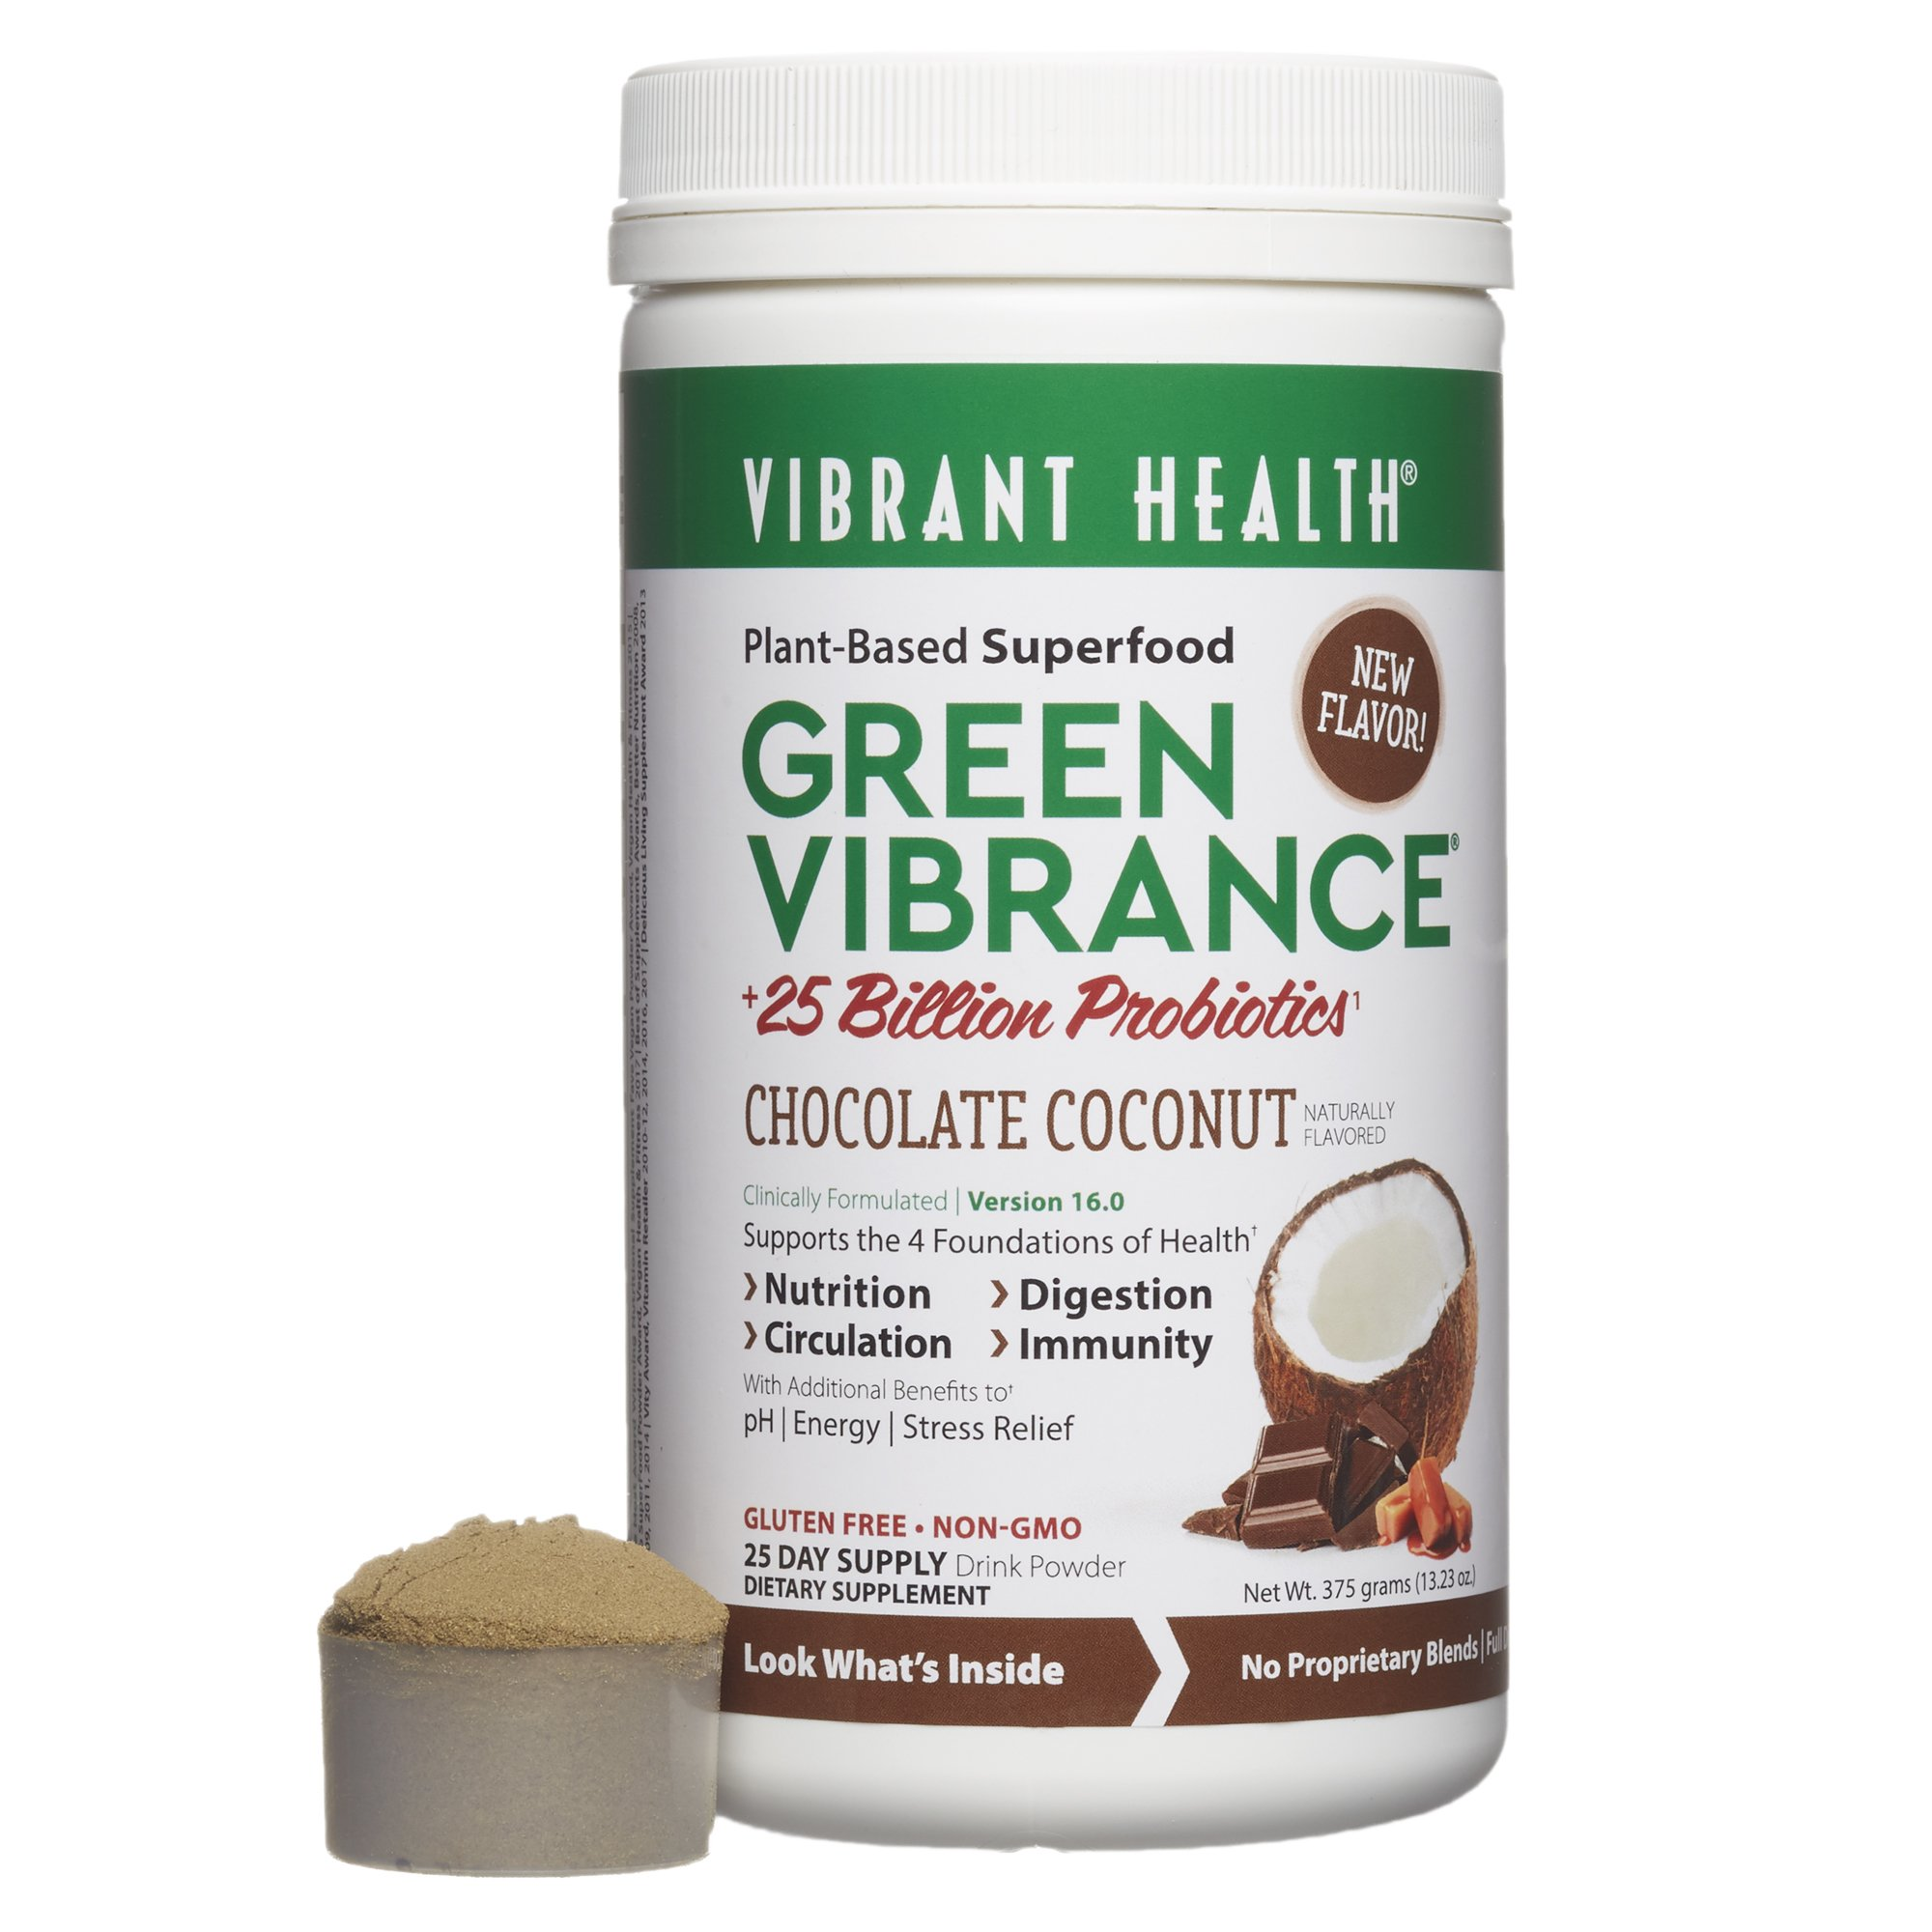 Vibrant Health - Green Vibrance, Plant-Based Daily Superfood + Protein and Antioxidants, Chocolate Coconut, 25 Servings